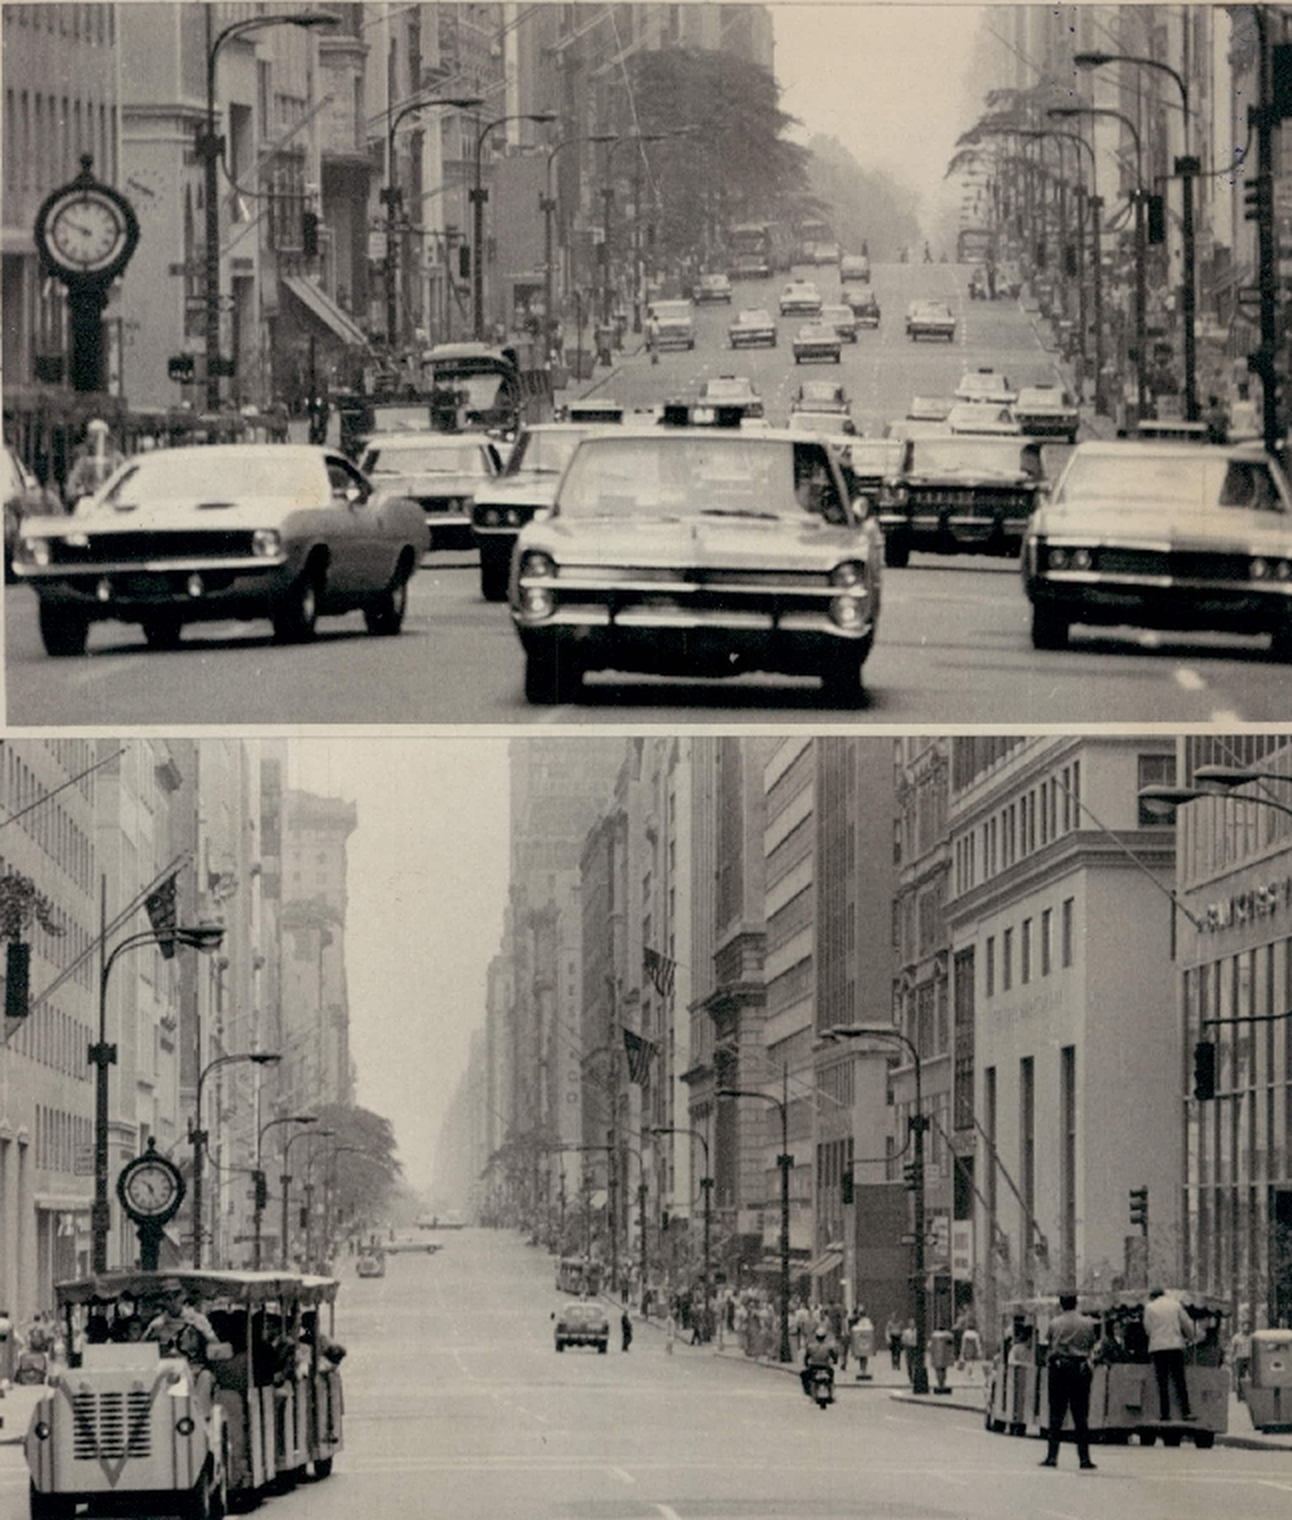 Banning Cars On City Streets In Manhattan - Not A New Idea